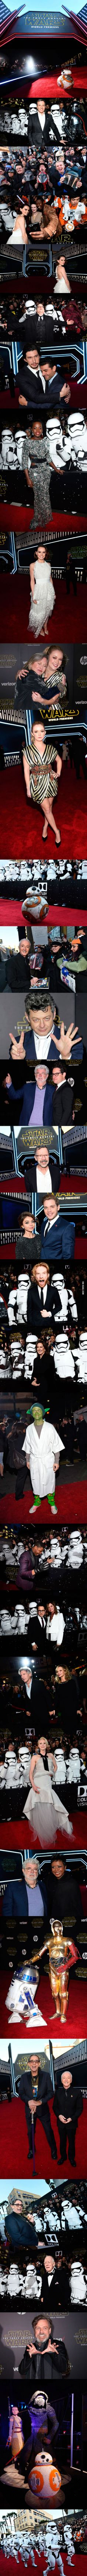 Photos Collection Of Star Wars: The Force Awakens World Premiere